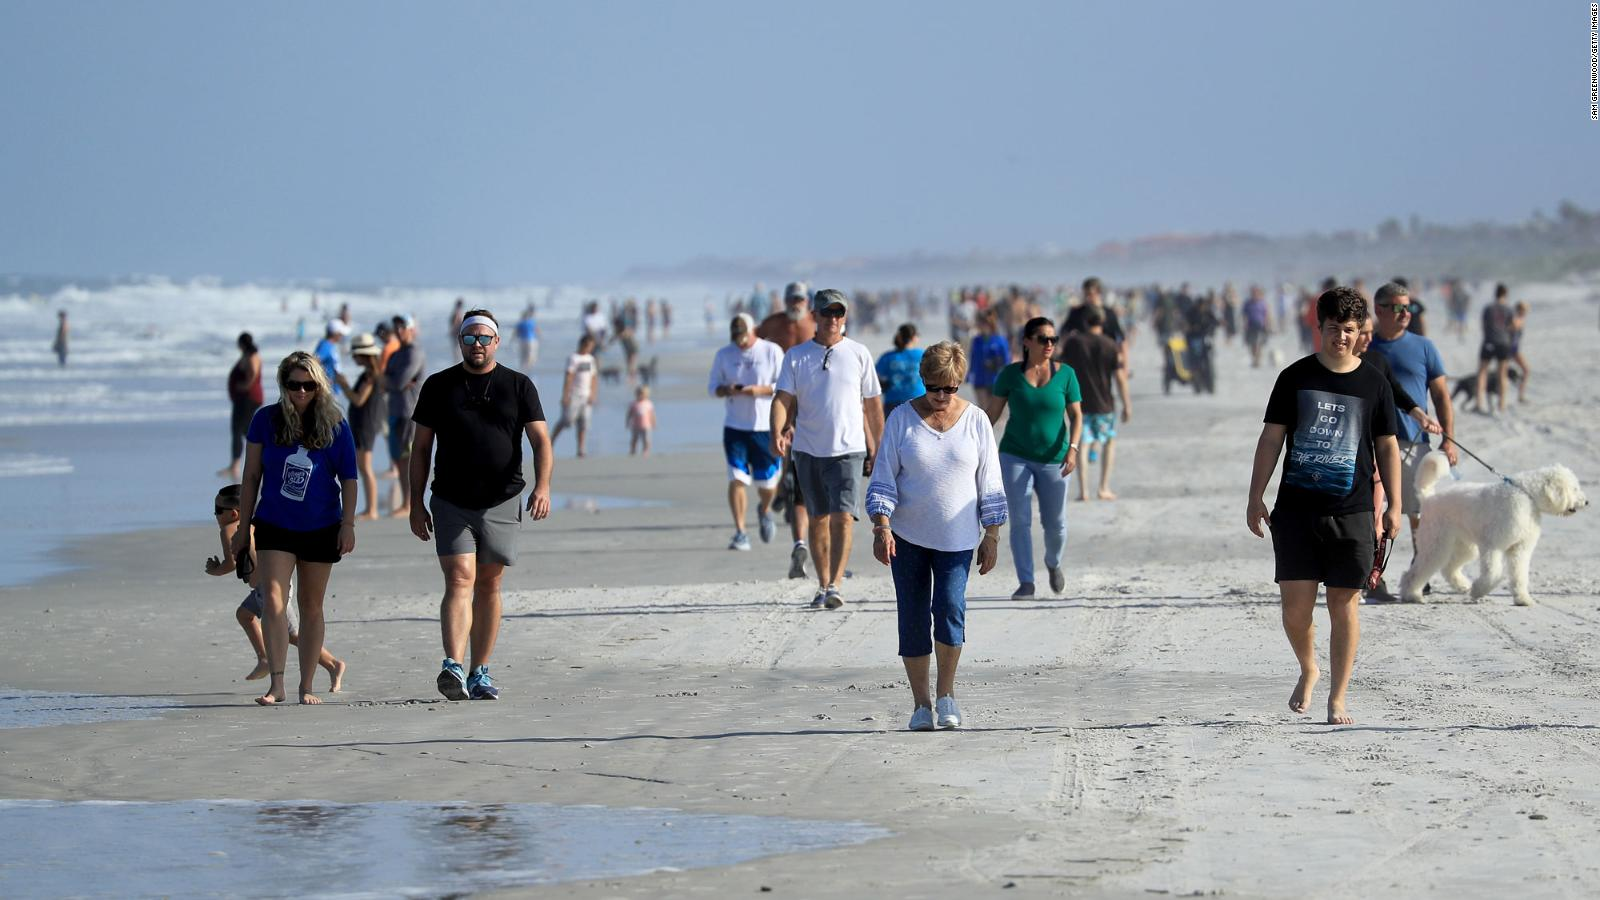 Beaches are reopening. If you go, please be smart about it | CNN ...